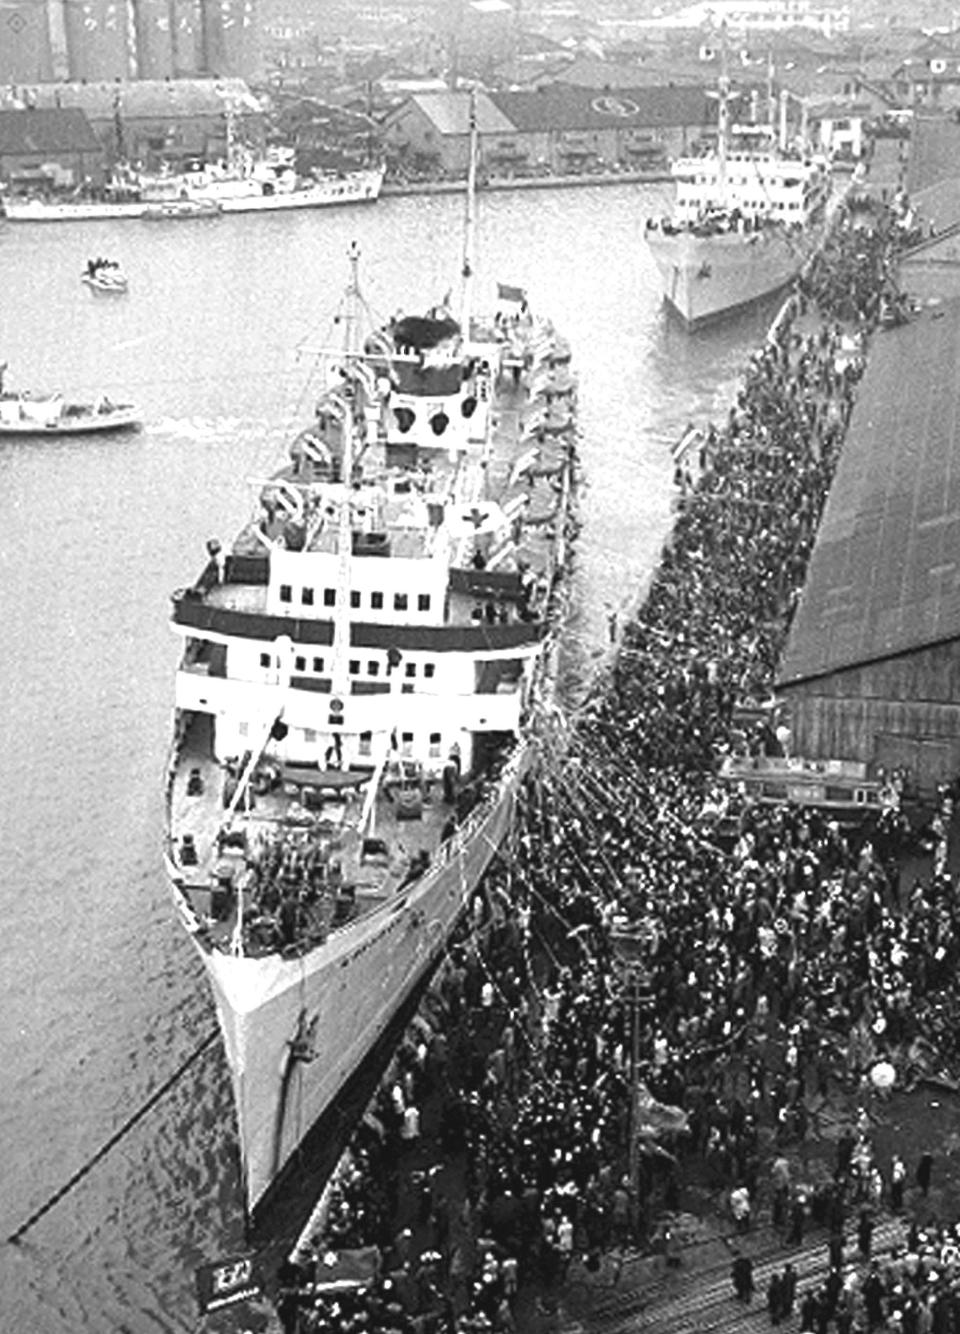 """In this Dec. 14, 1959, photo, the first two ships carrying 975 people depart for North Korea from the port of Niigata, Japan, after receiving a grand see-off. A Japanese court has summoned North Korea's leader to face demands for compensation by several ethnic Korean residents of Japan who say they suffered human rights abuses in North Korea after joining a resettlement program there that described the country as a """"paradise on Earth,"""" a lawyer and plaintiff said Tuesday. (Kyodo News via AP)"""